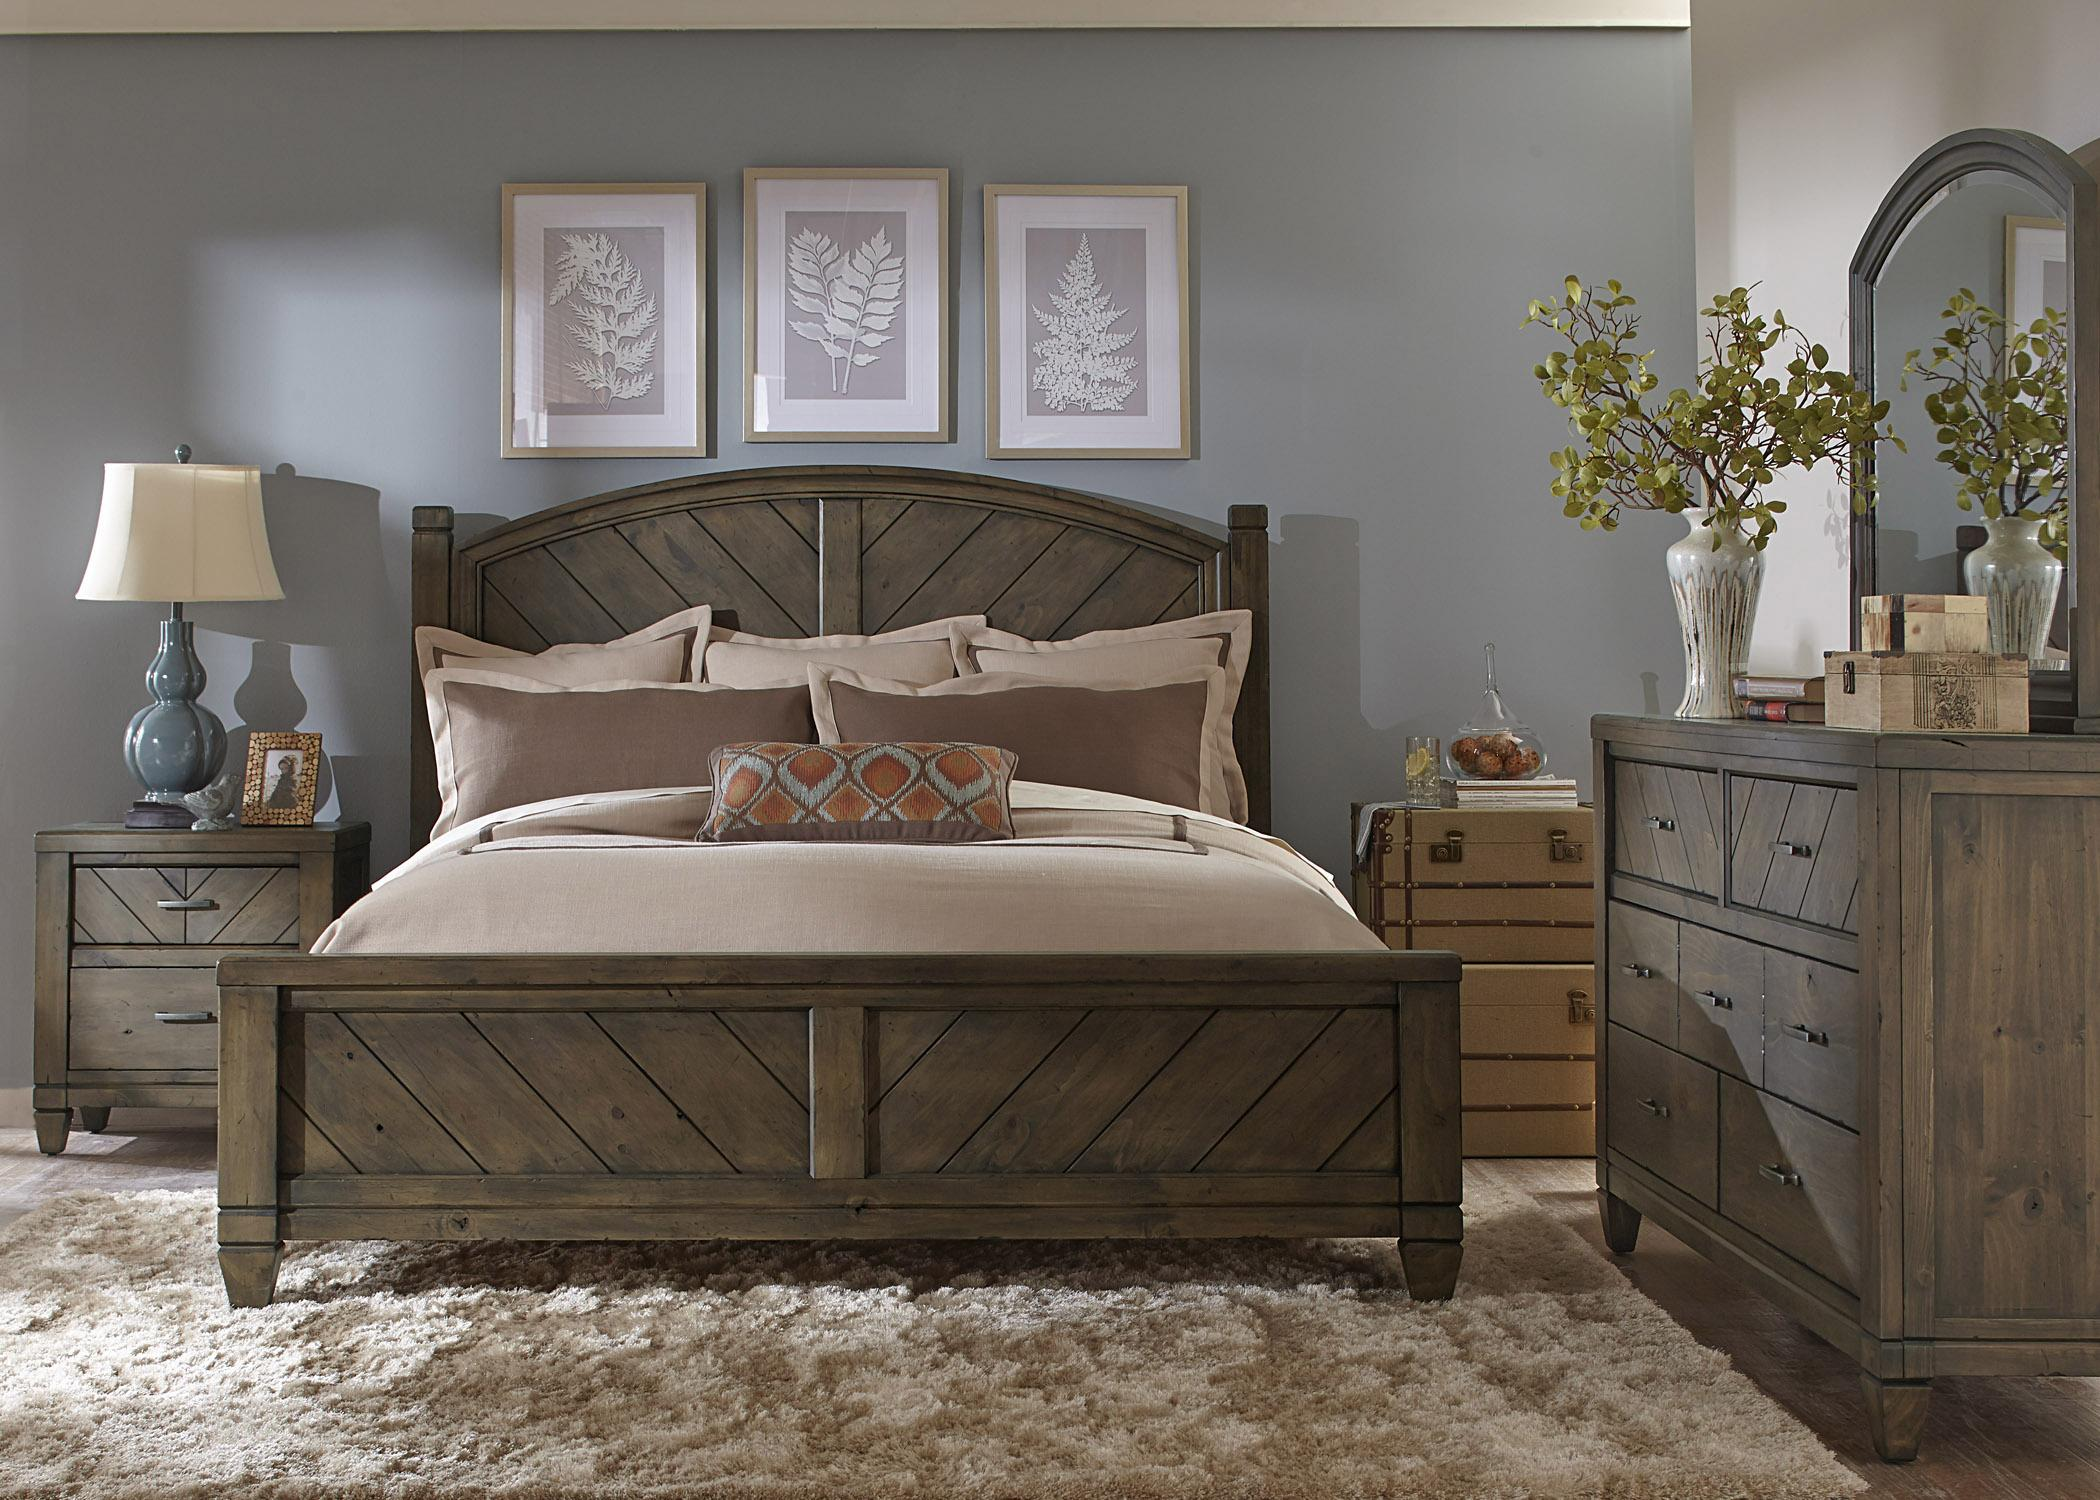 Liberty Furniture Modern Country King Bedroom Group - Item Number: 833 K Bedroom Group 2